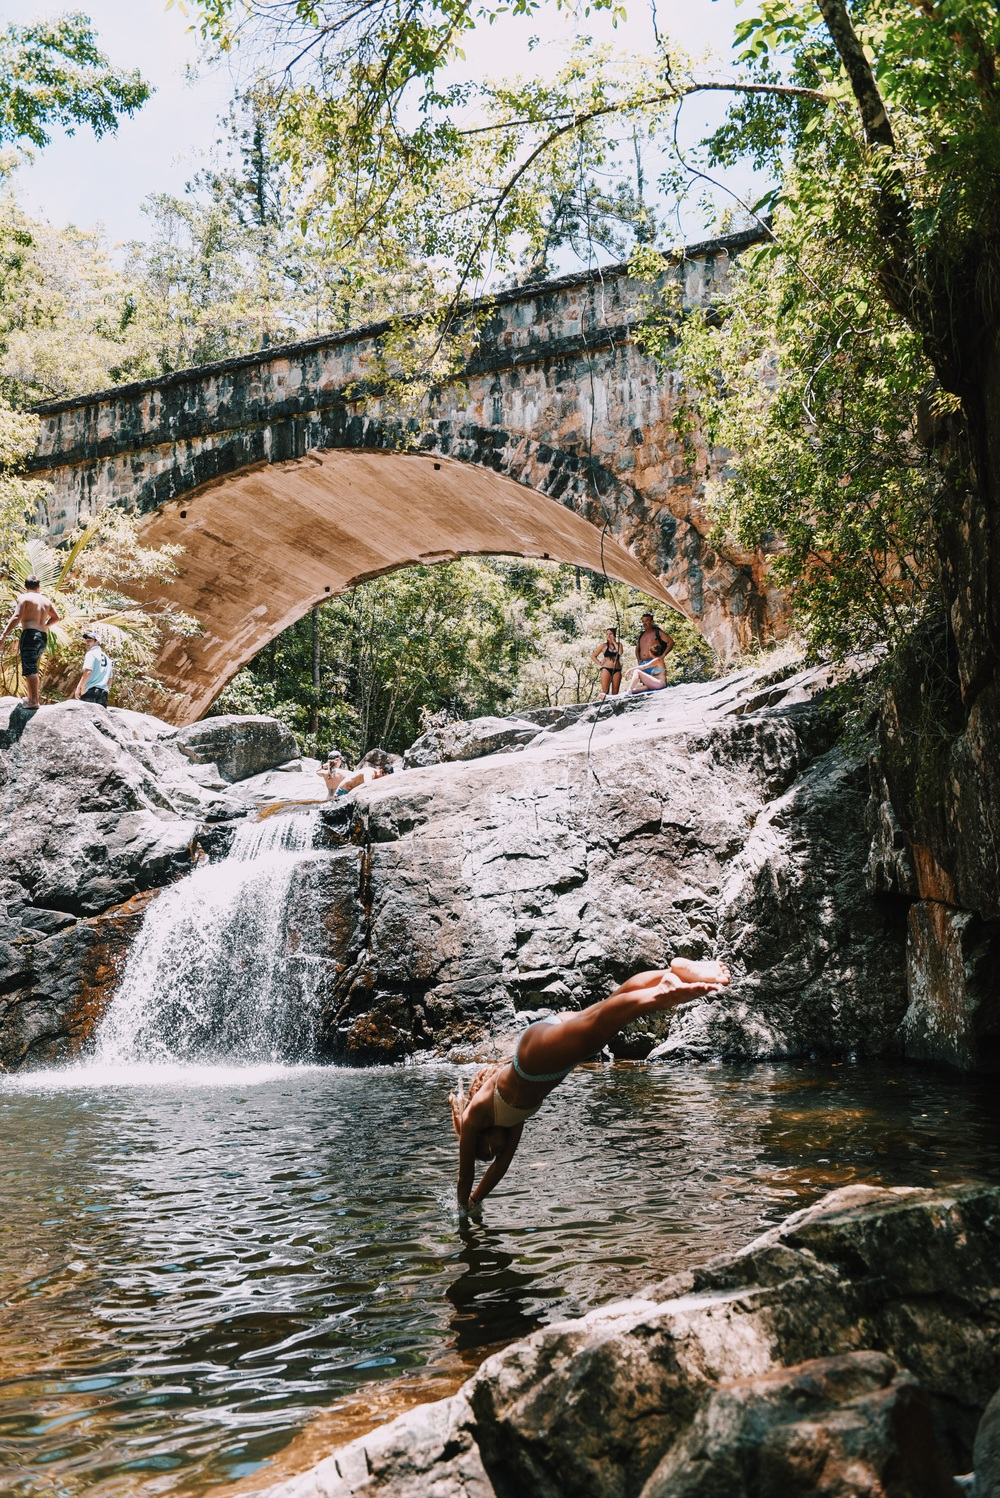 Diving into fresh water at Crystal Creek falls